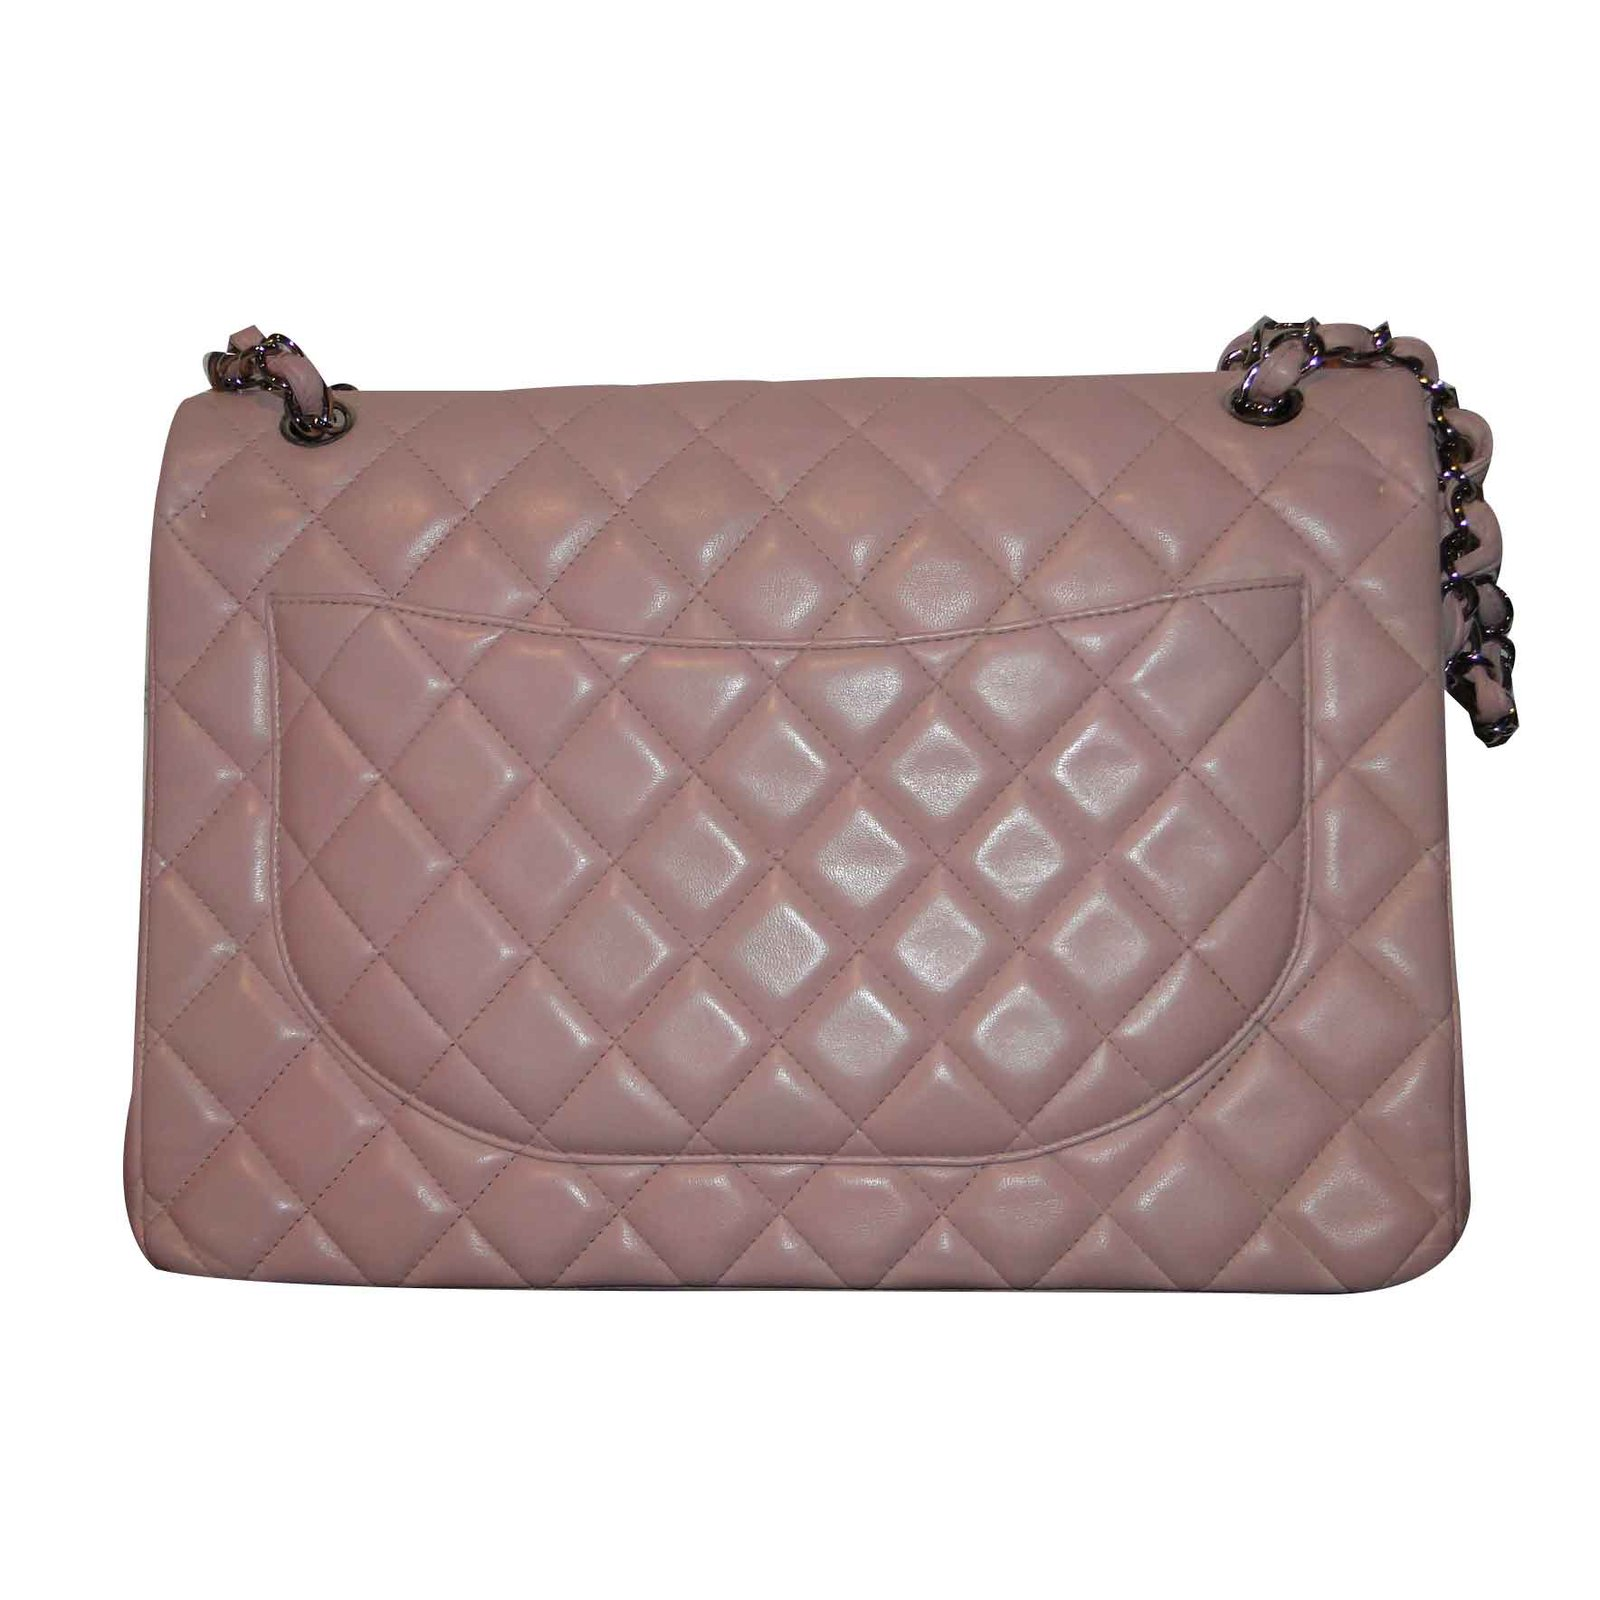 204debce4e1c Chanel Timeless MAXI lined Flap bag Handbags Leather,Lambskin Pink ...